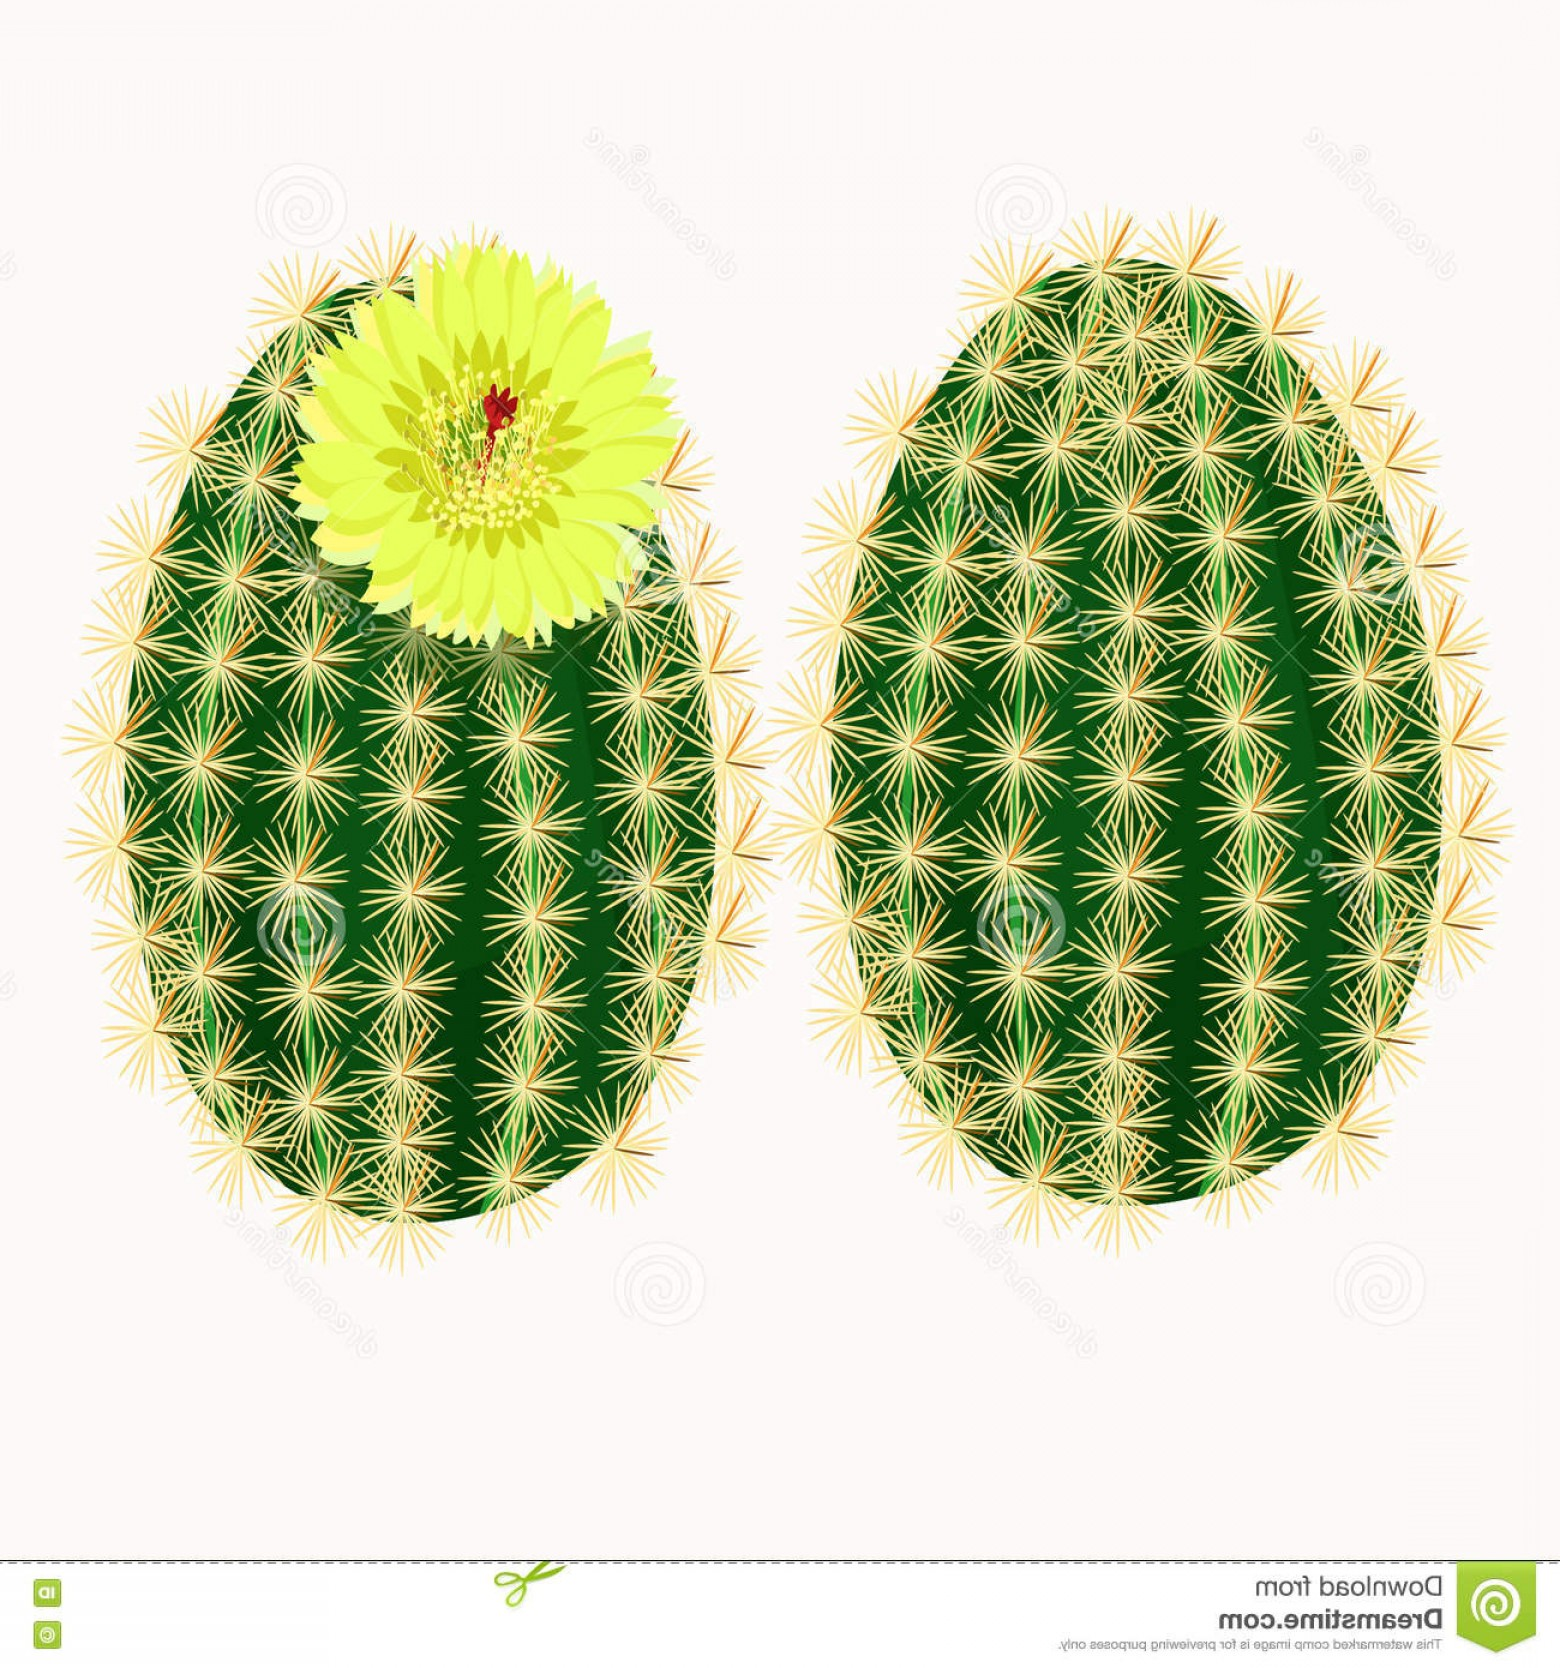 Cactus And Flower Vector: Stock Illustration Set Flowering Cactus Flower Vector Illustration Image